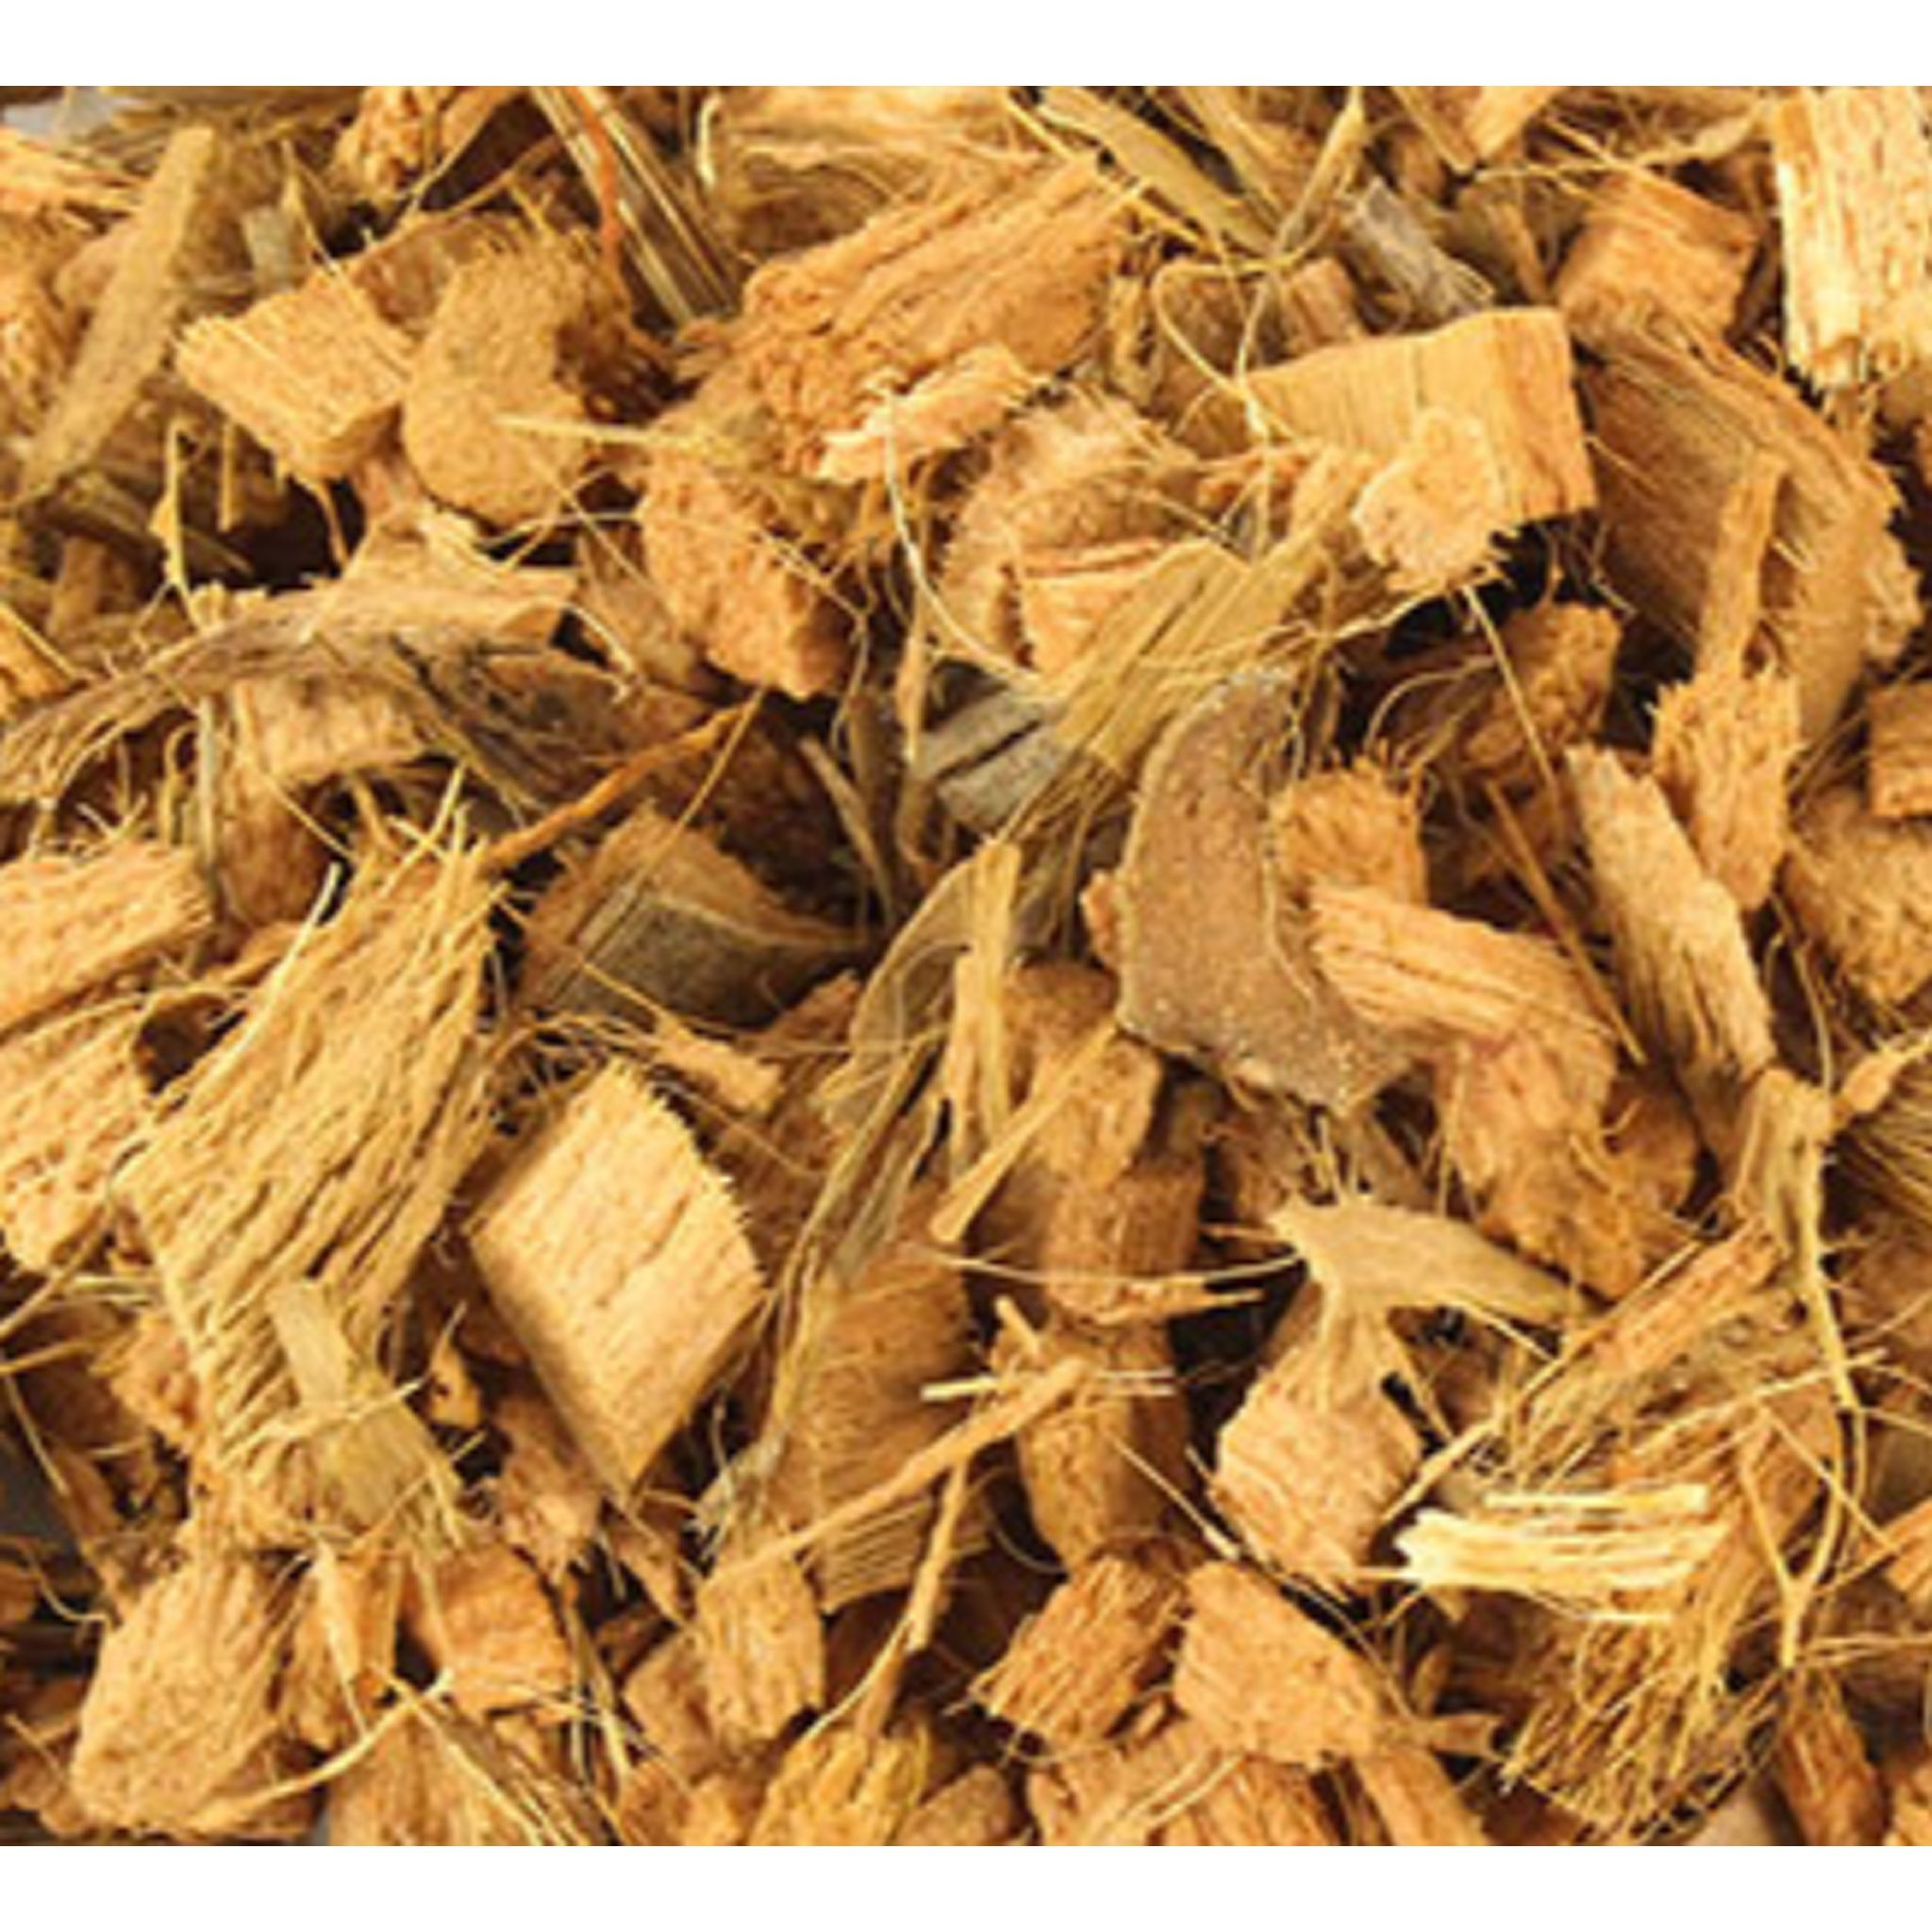 Coco Coir Chips Wholesaler Organic Chips Coconut Chips